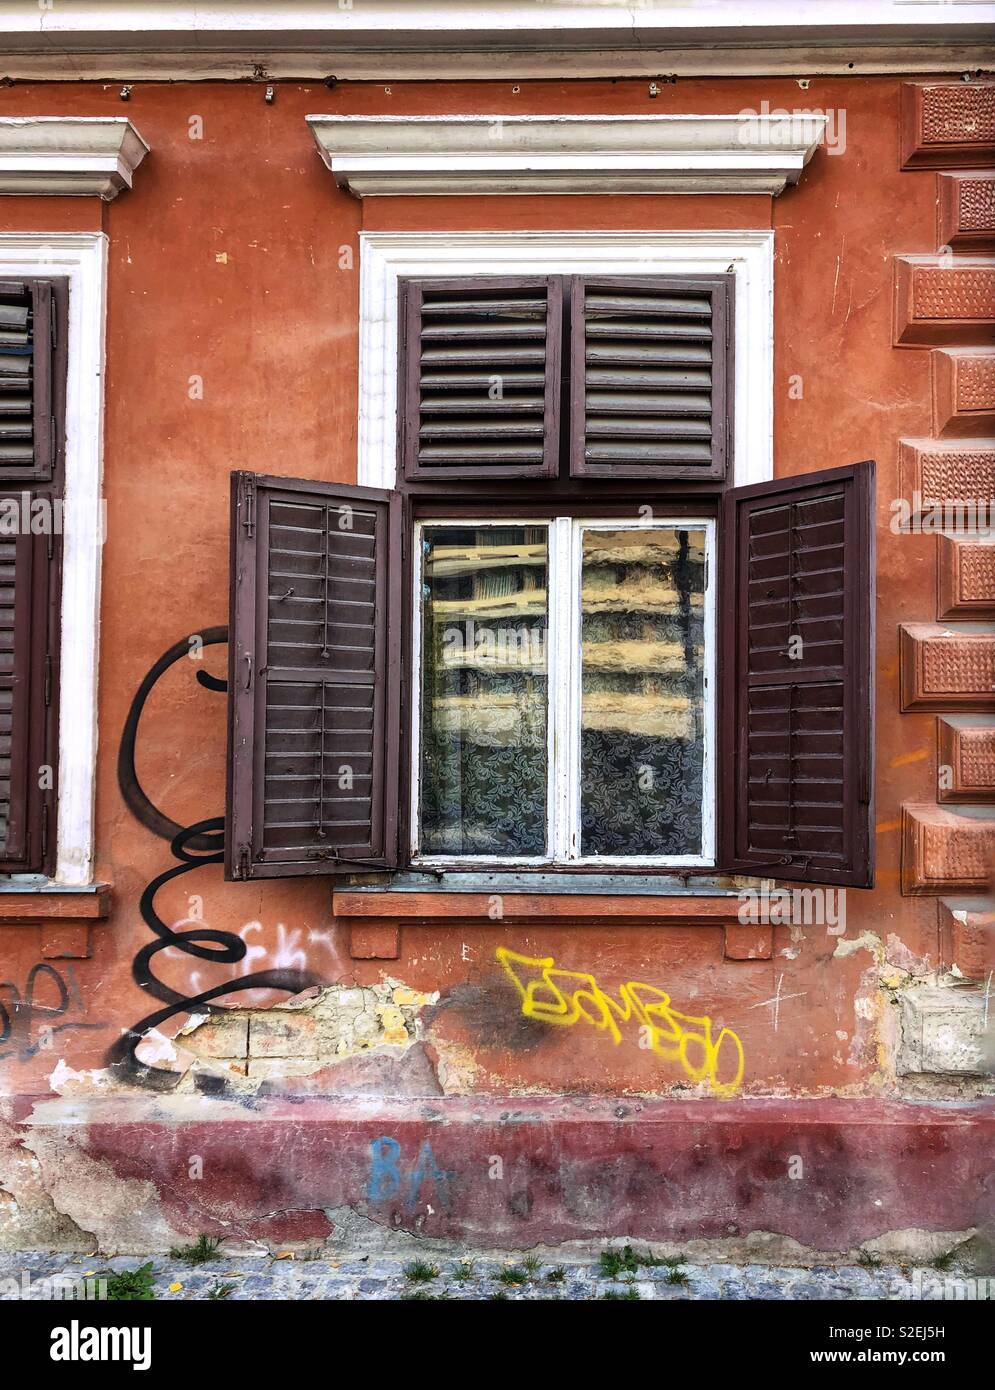 Open brown shutters, window reflection and graffiti on a painted wall. - Stock Image